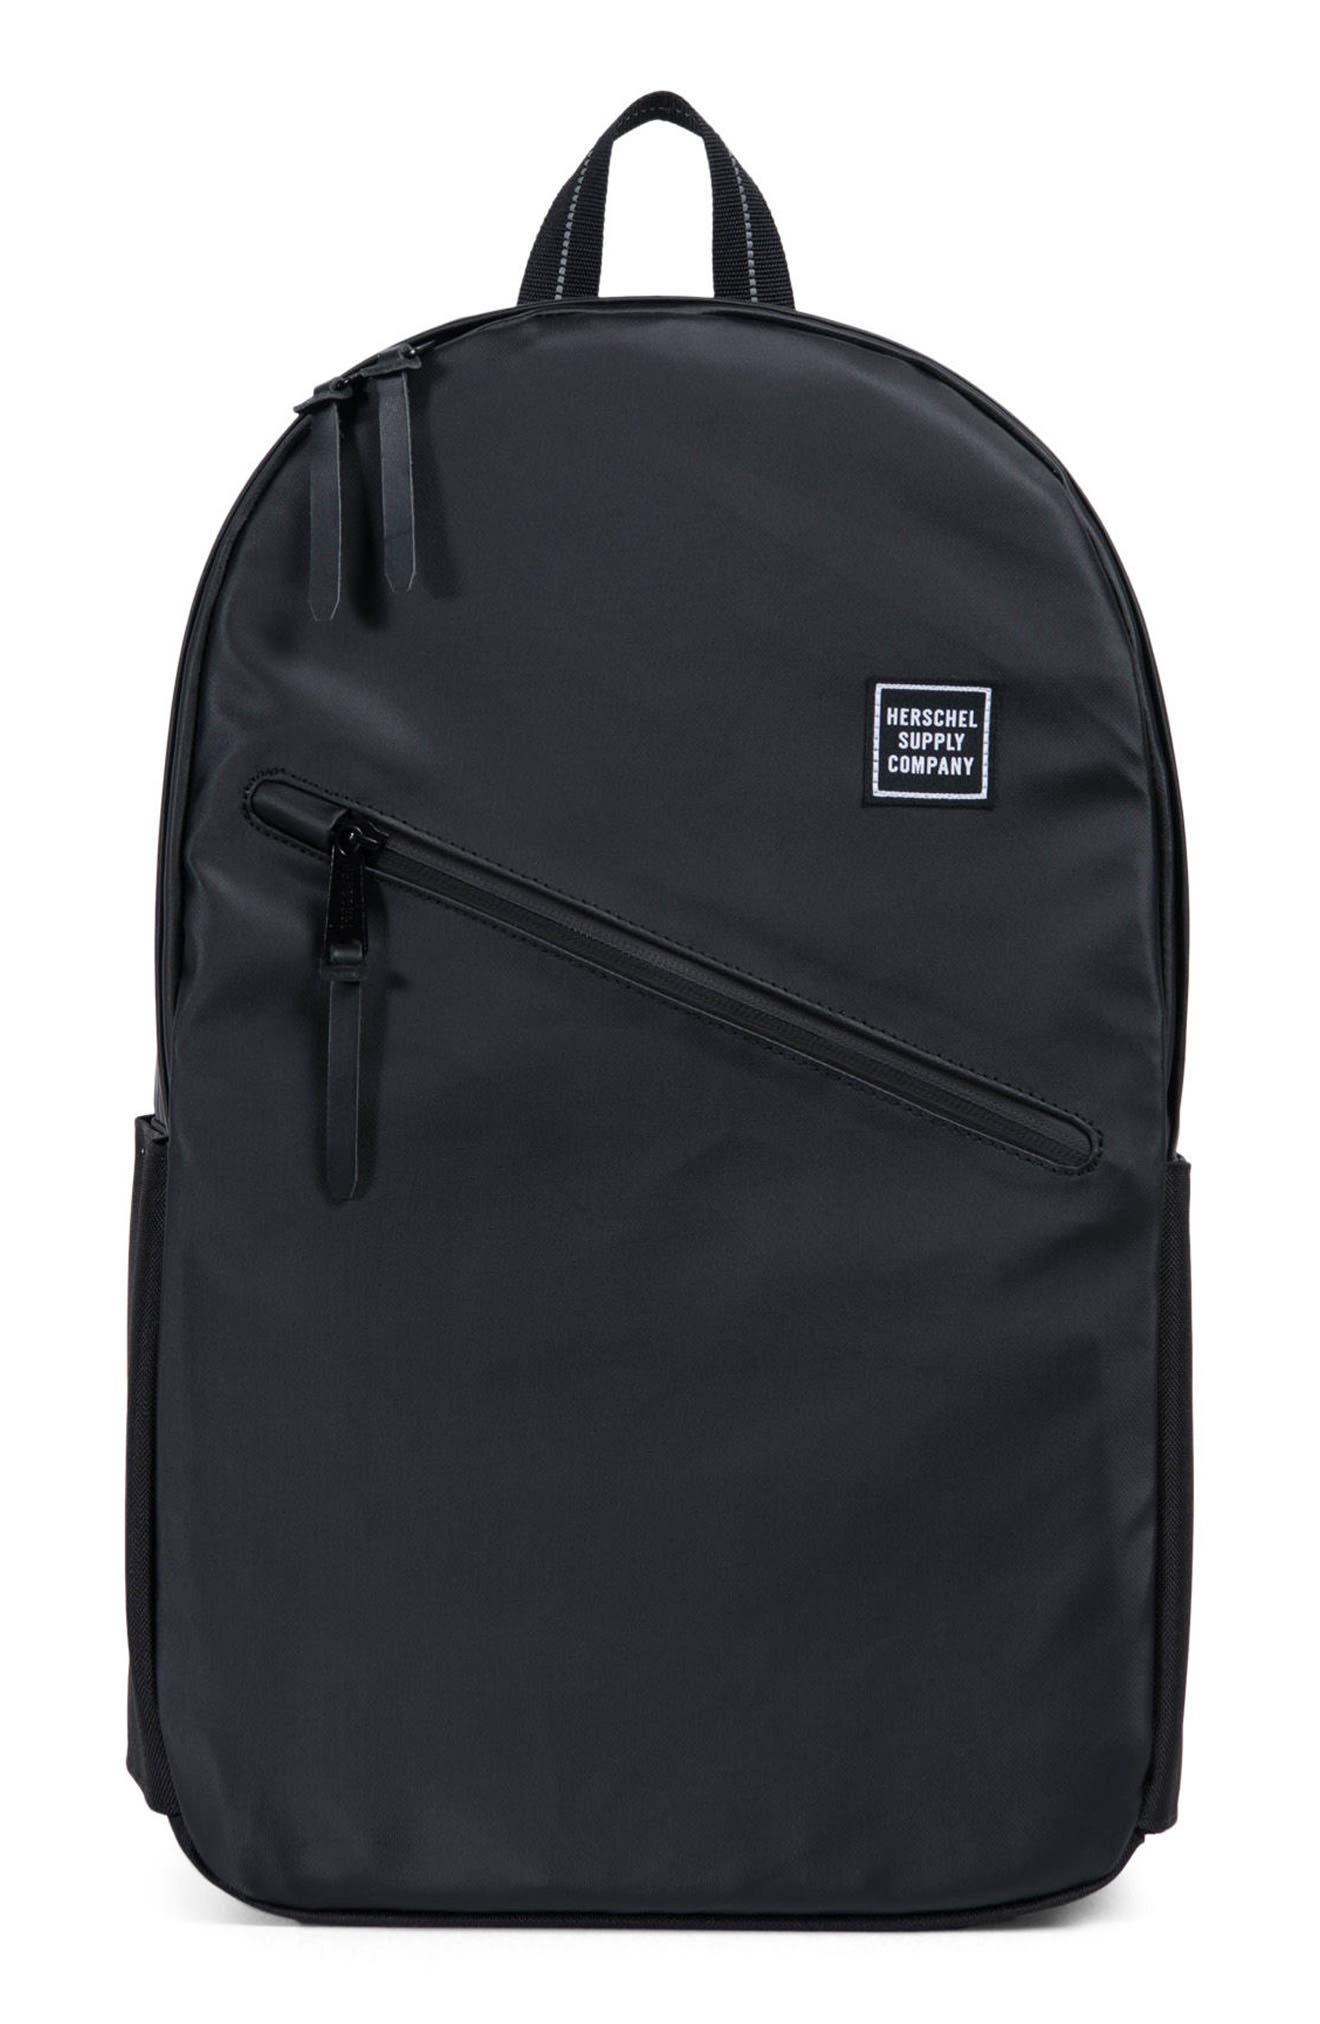 Parker Studio Collection Backpack,                         Main,                         color,